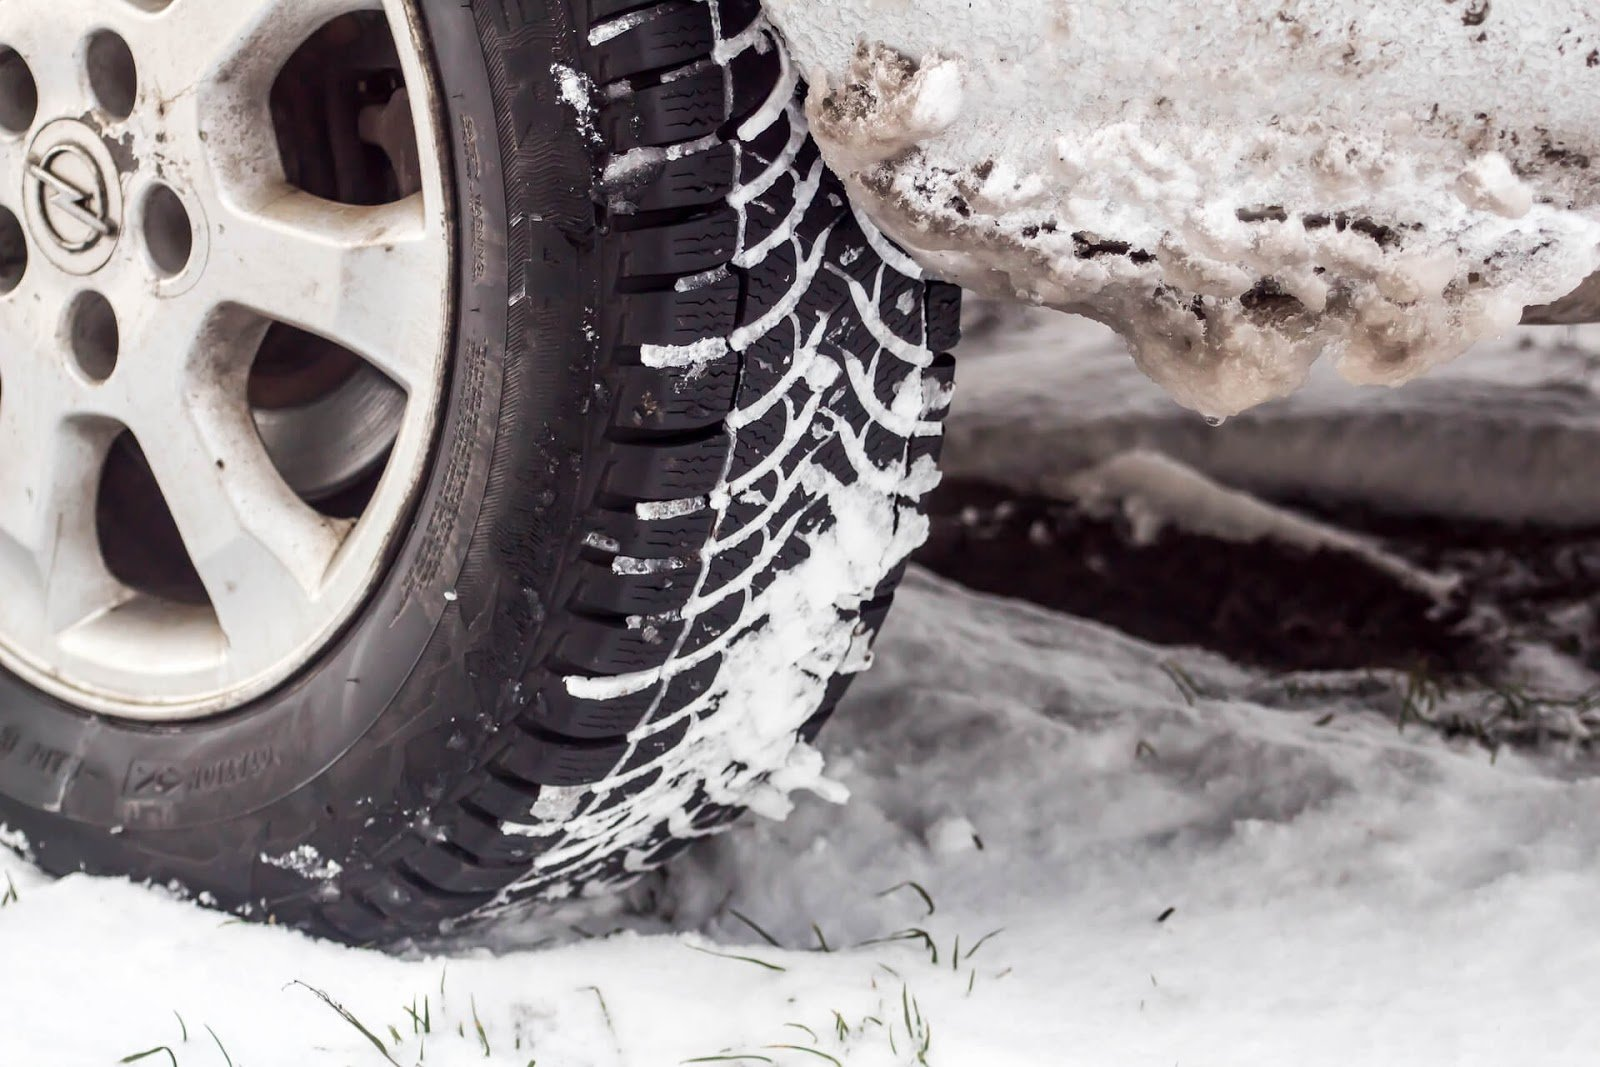 Car snow tire